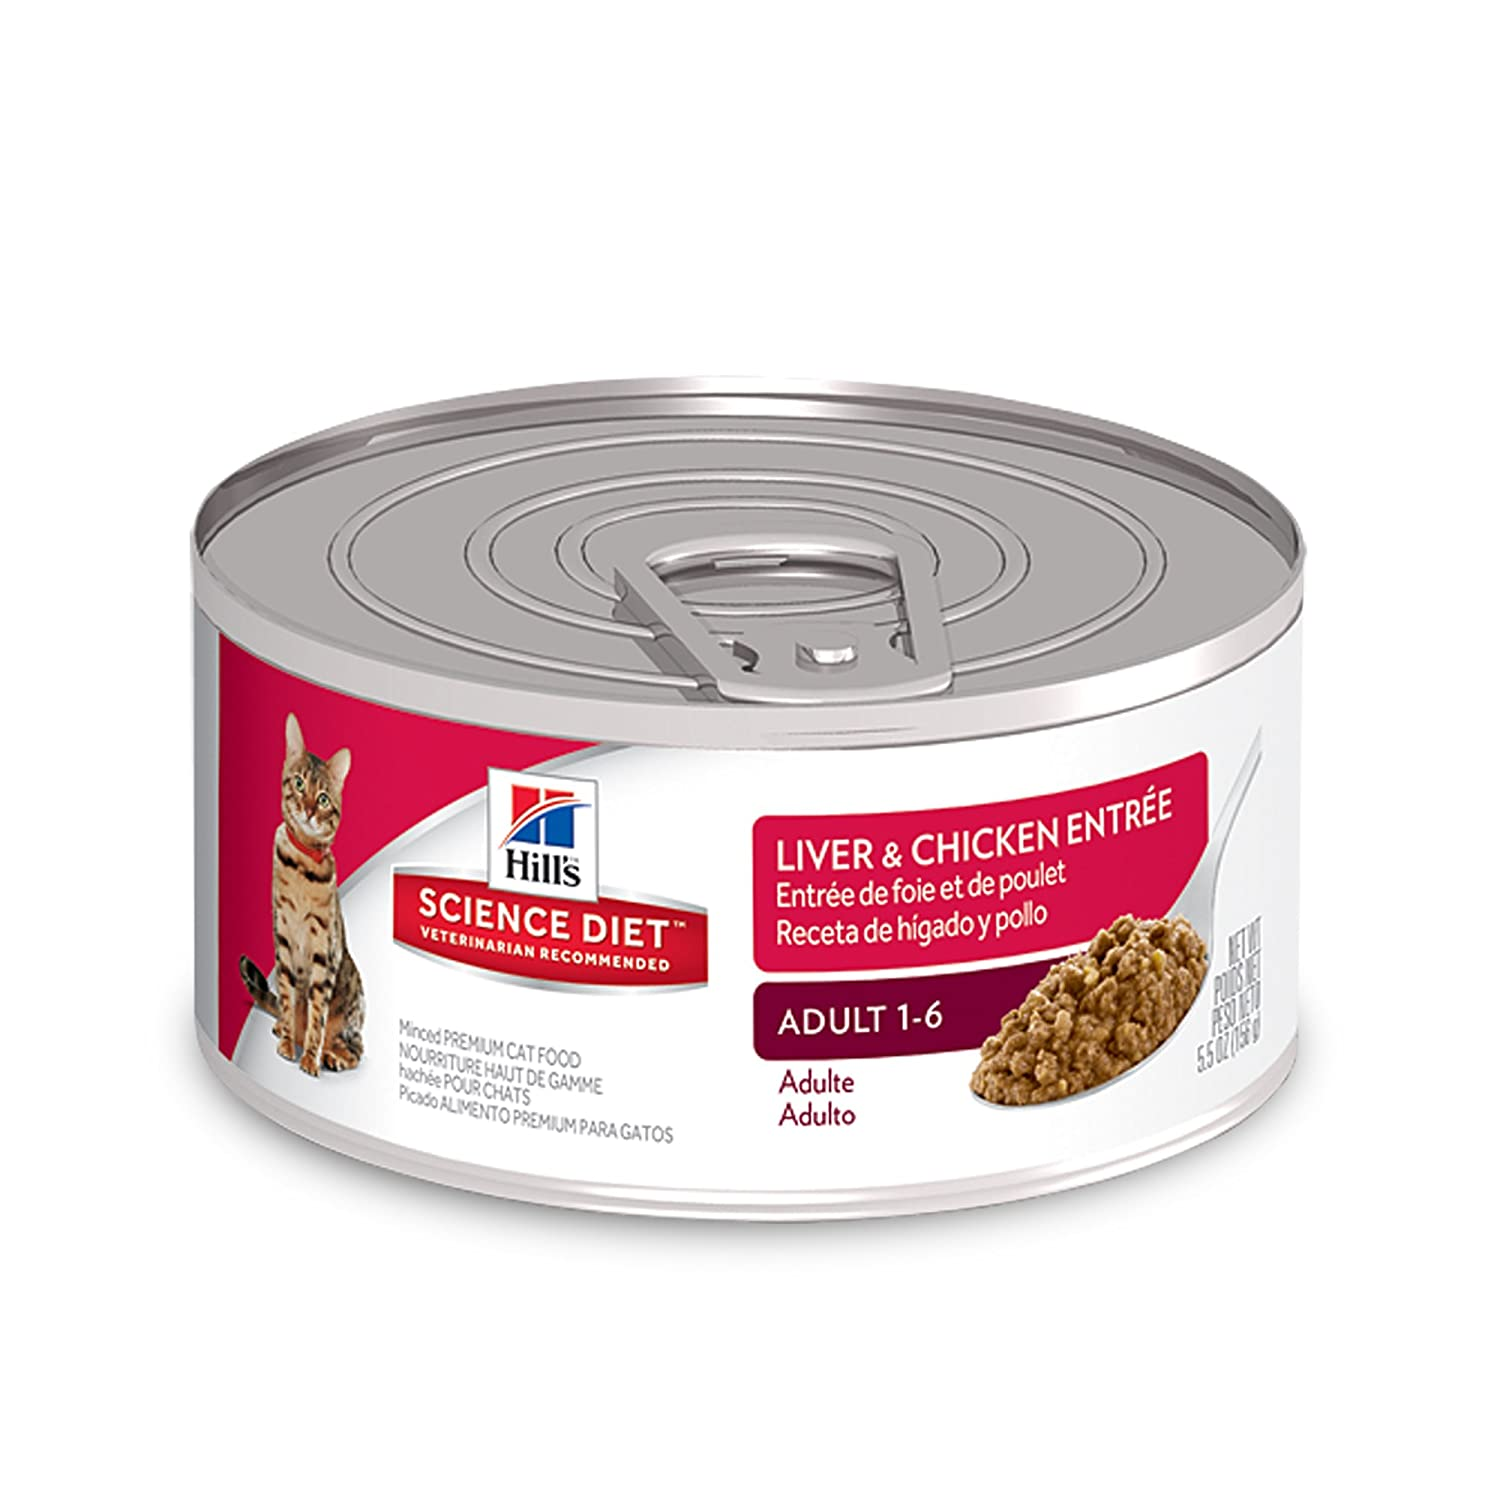 Amazon.com : HillS Science Diet Adult Wet Cat Food, Liver & Chicken Entrée Canned Cat Food, 2.9 Oz, 24 Pack : Pet Supplies